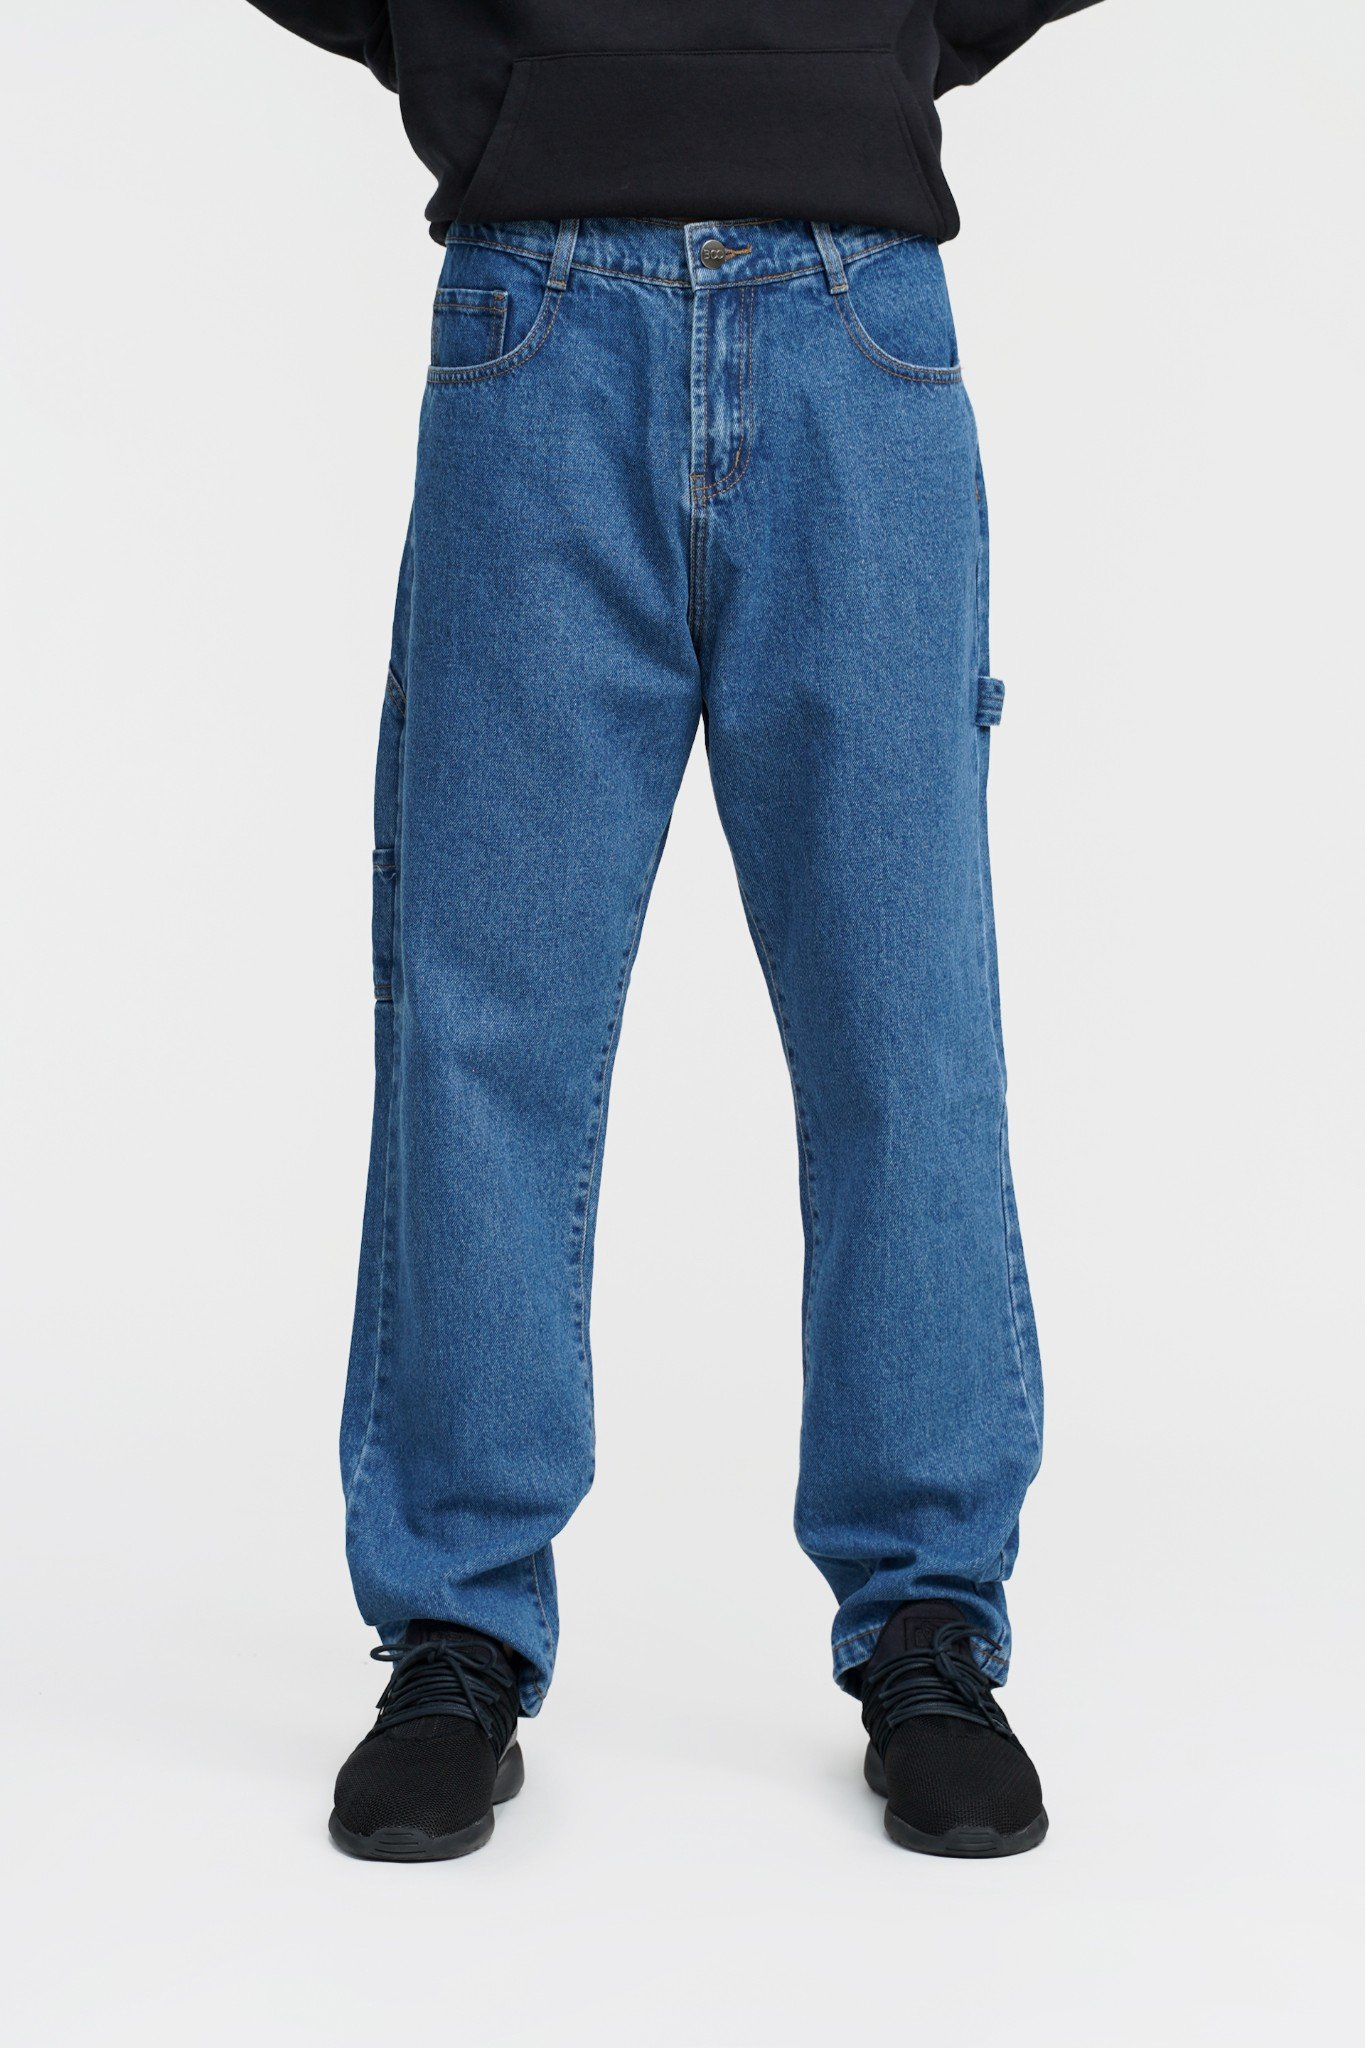 QUẦN JEANS NAM STRAIGHT MITS